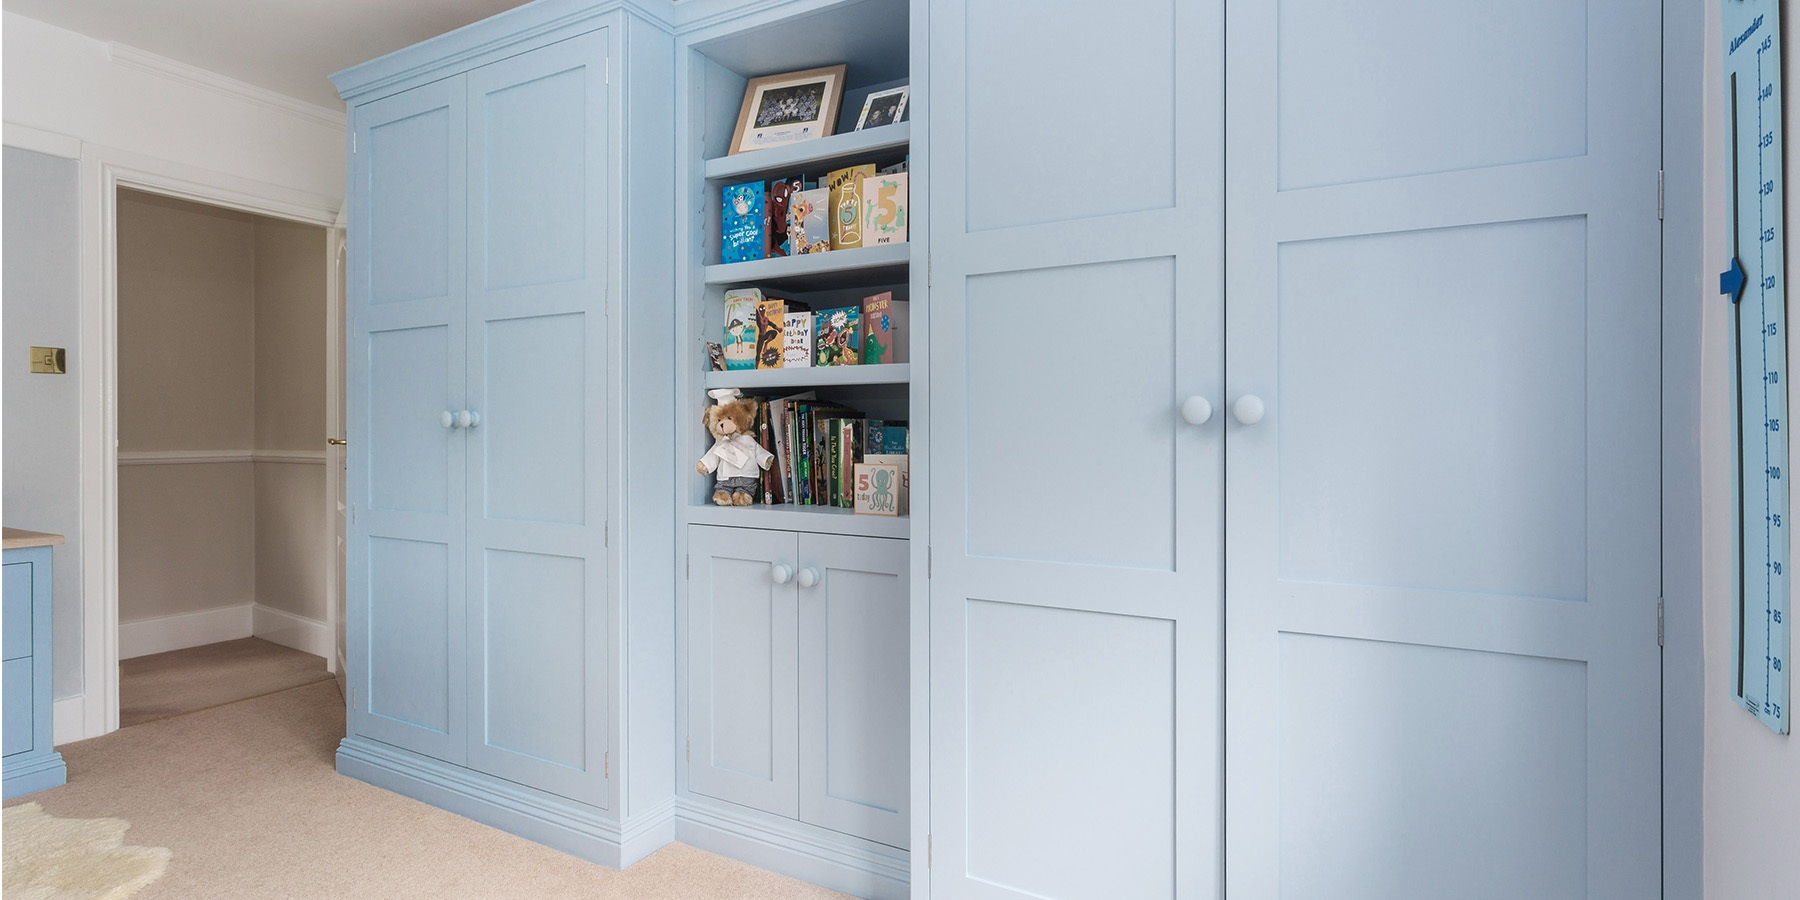 Bespoke Children's Freestanding Wardrobes - Burlanes handmade freestanding wardrobes, handpainted in Mylands 'Morning Blue'.